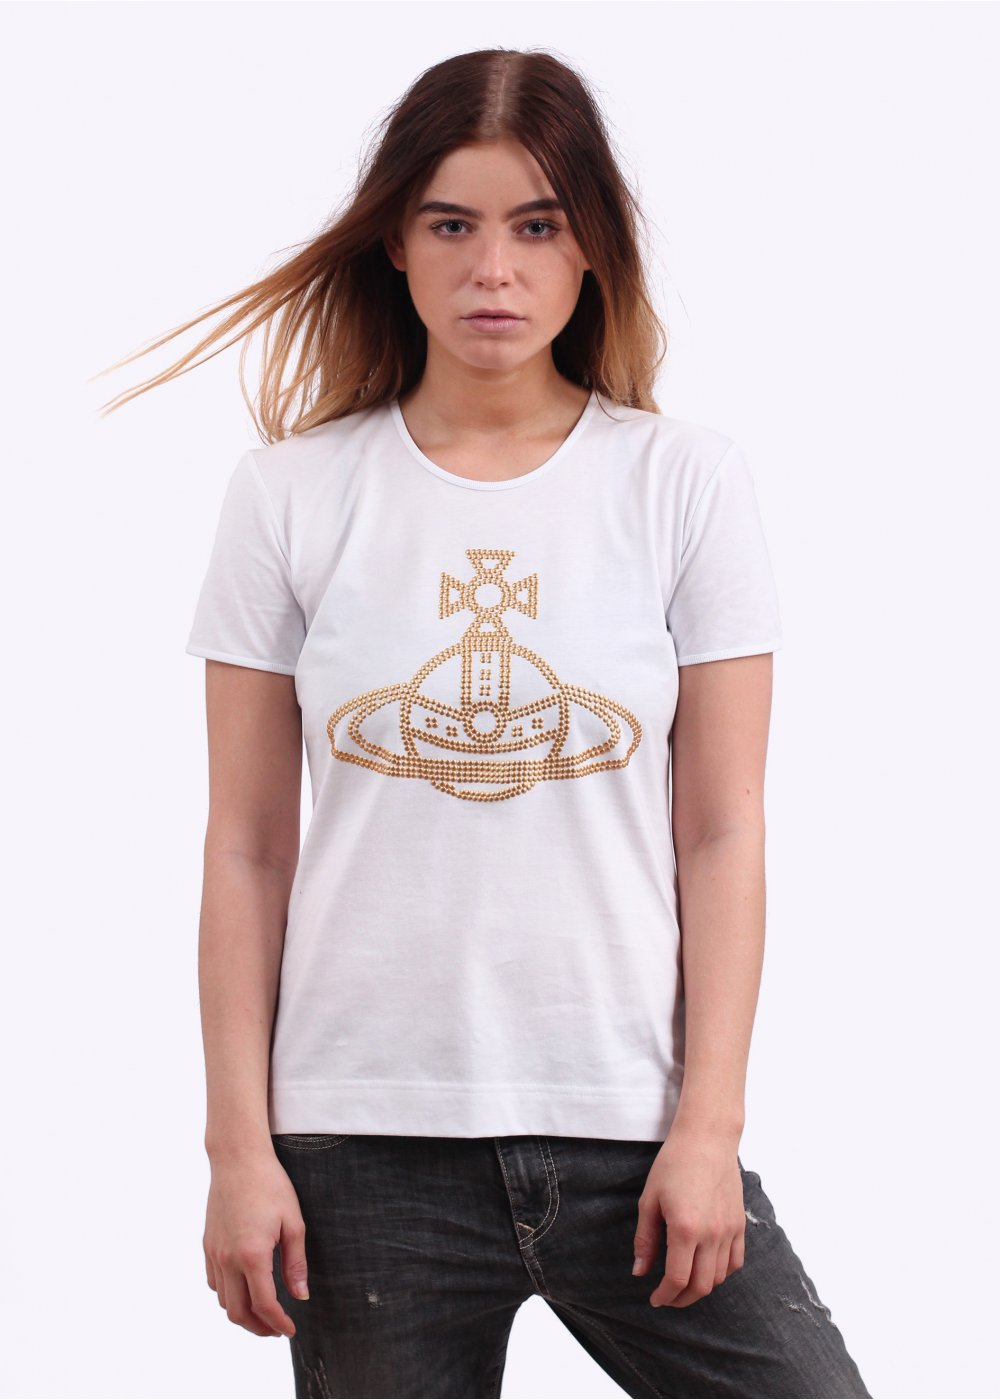 6c15218a81 Vivienne Westwood Womens Stud Orb T-Shirt - White - Tops from Triads UK